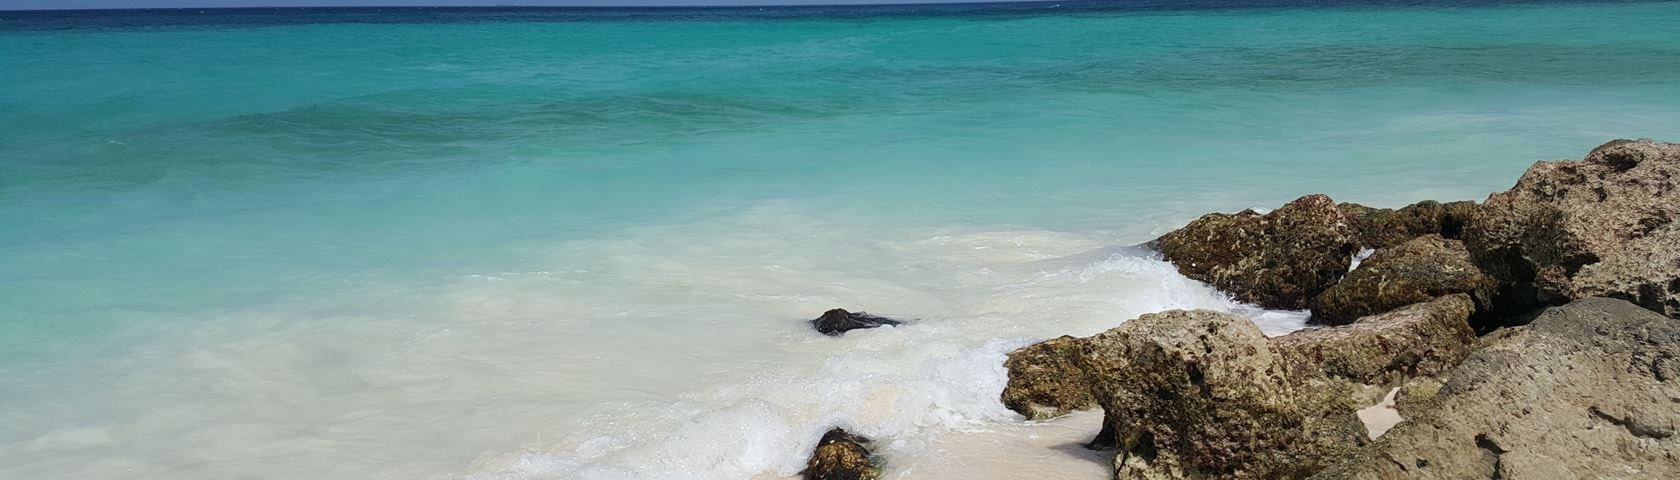 Scenic Beach Photo from Aruba